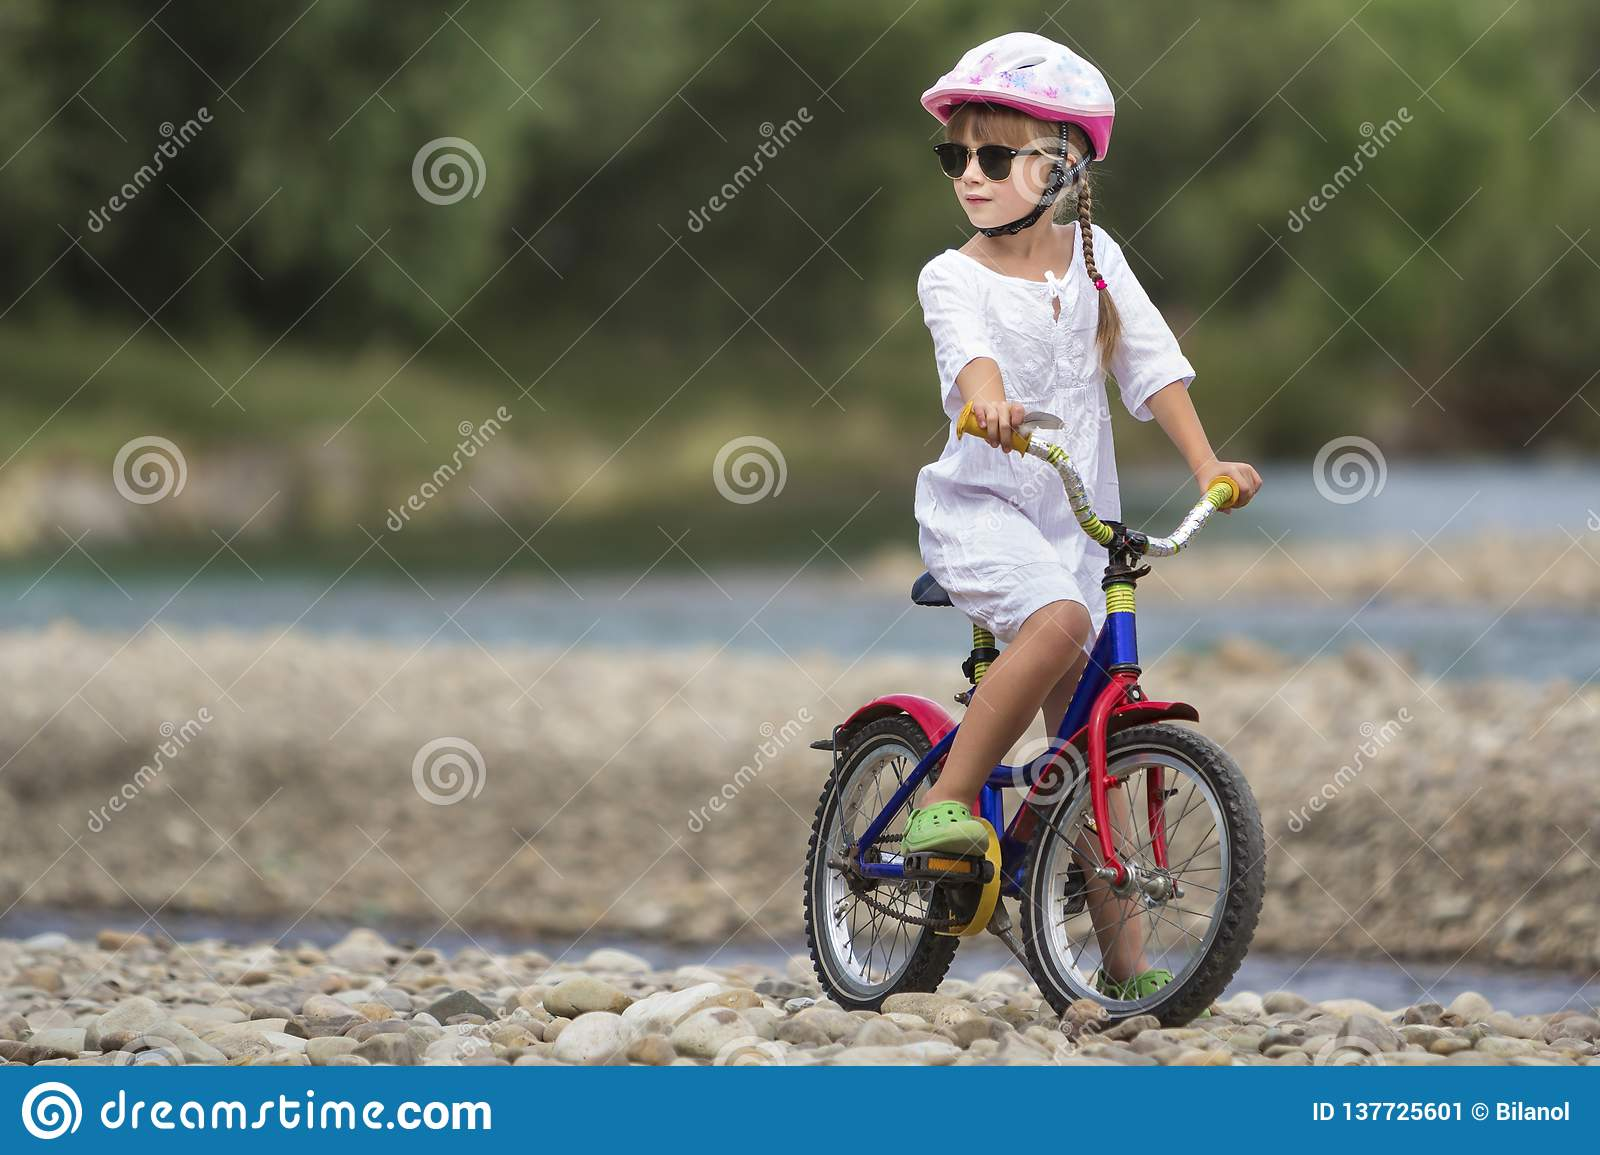 7b70b0b73bde Cute young girl in white clothing, sunglasses with long braids wearing pink  safety helmet riding child bicycle on pebbled river bank on blurred green  summer ...